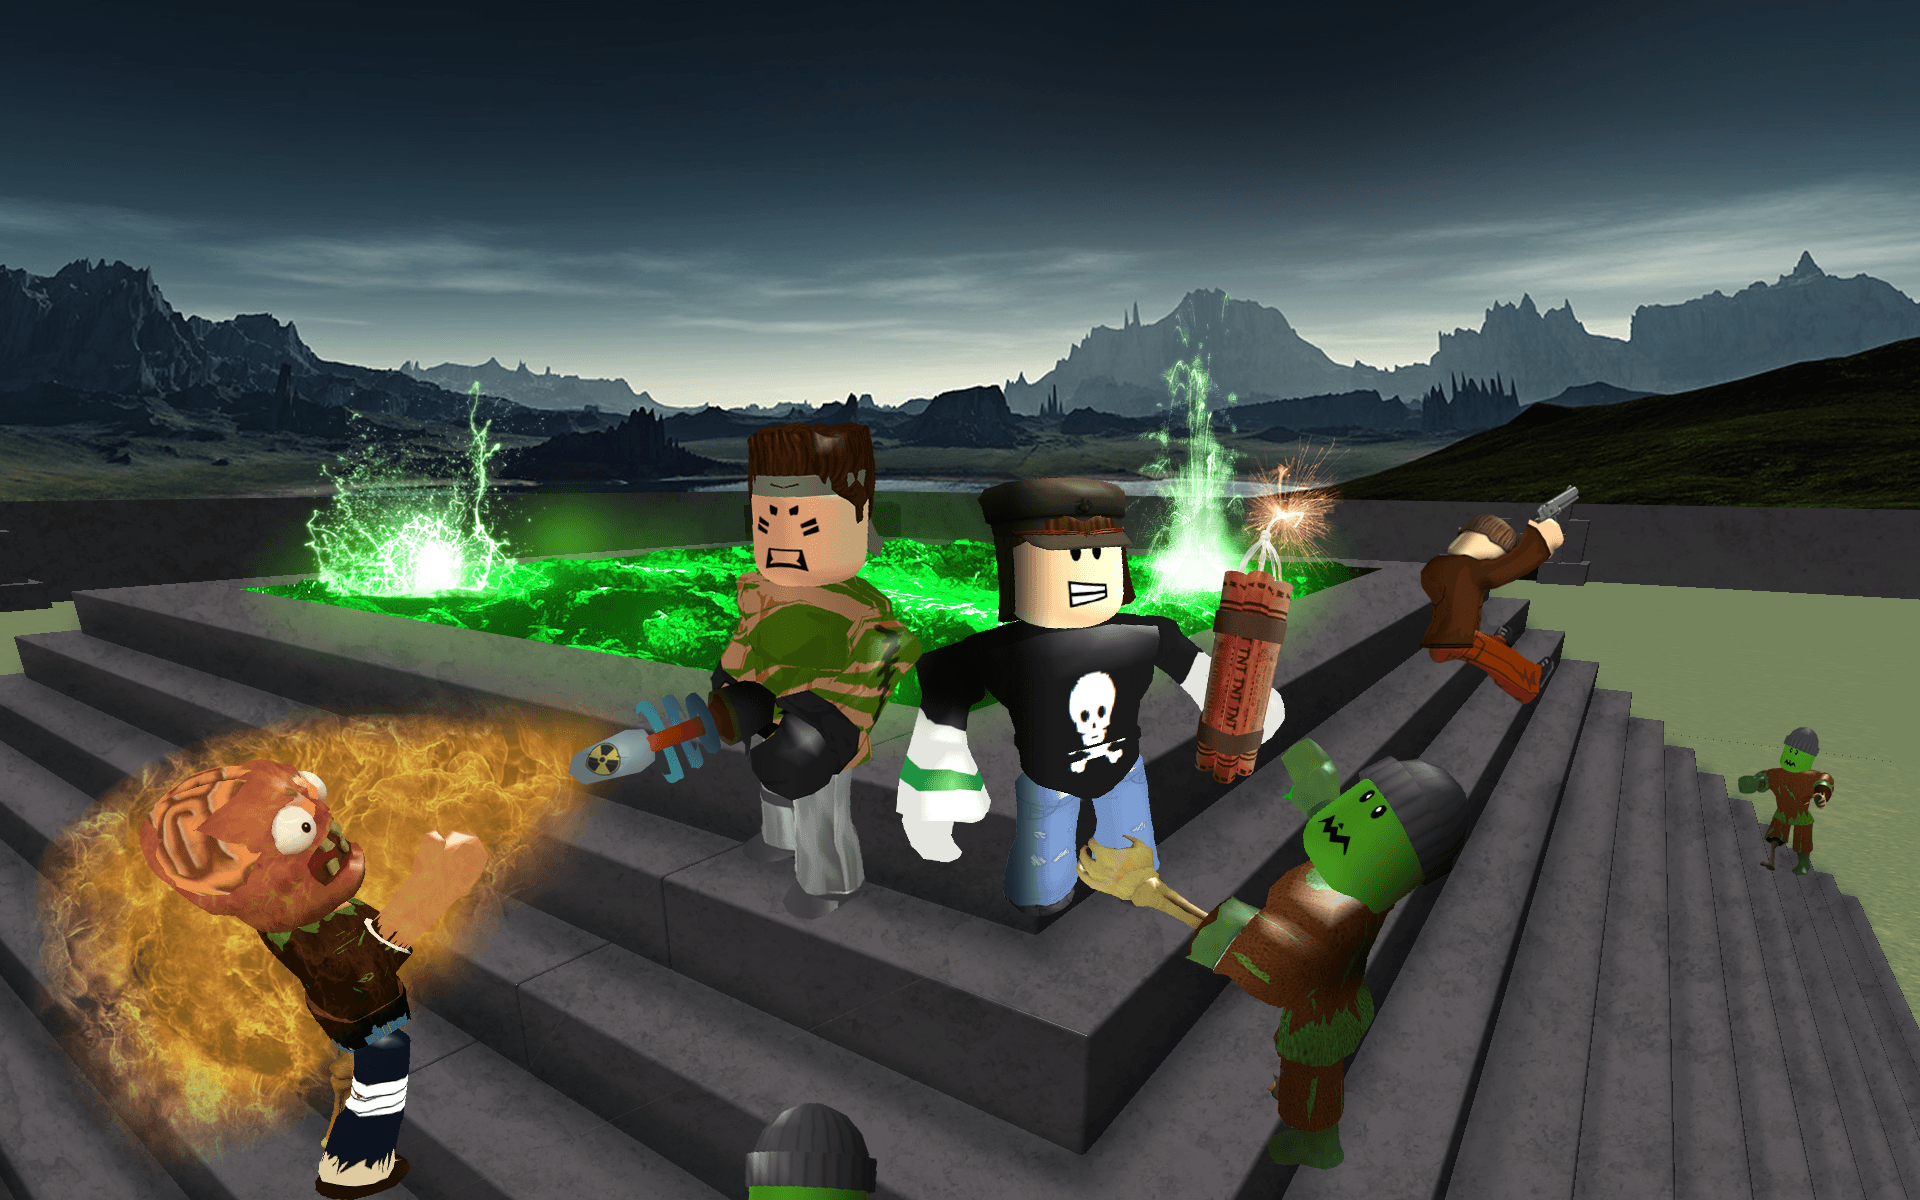 Roblox Gaming Wallpapers   Top Roblox Gaming Backgrounds 1920x1200